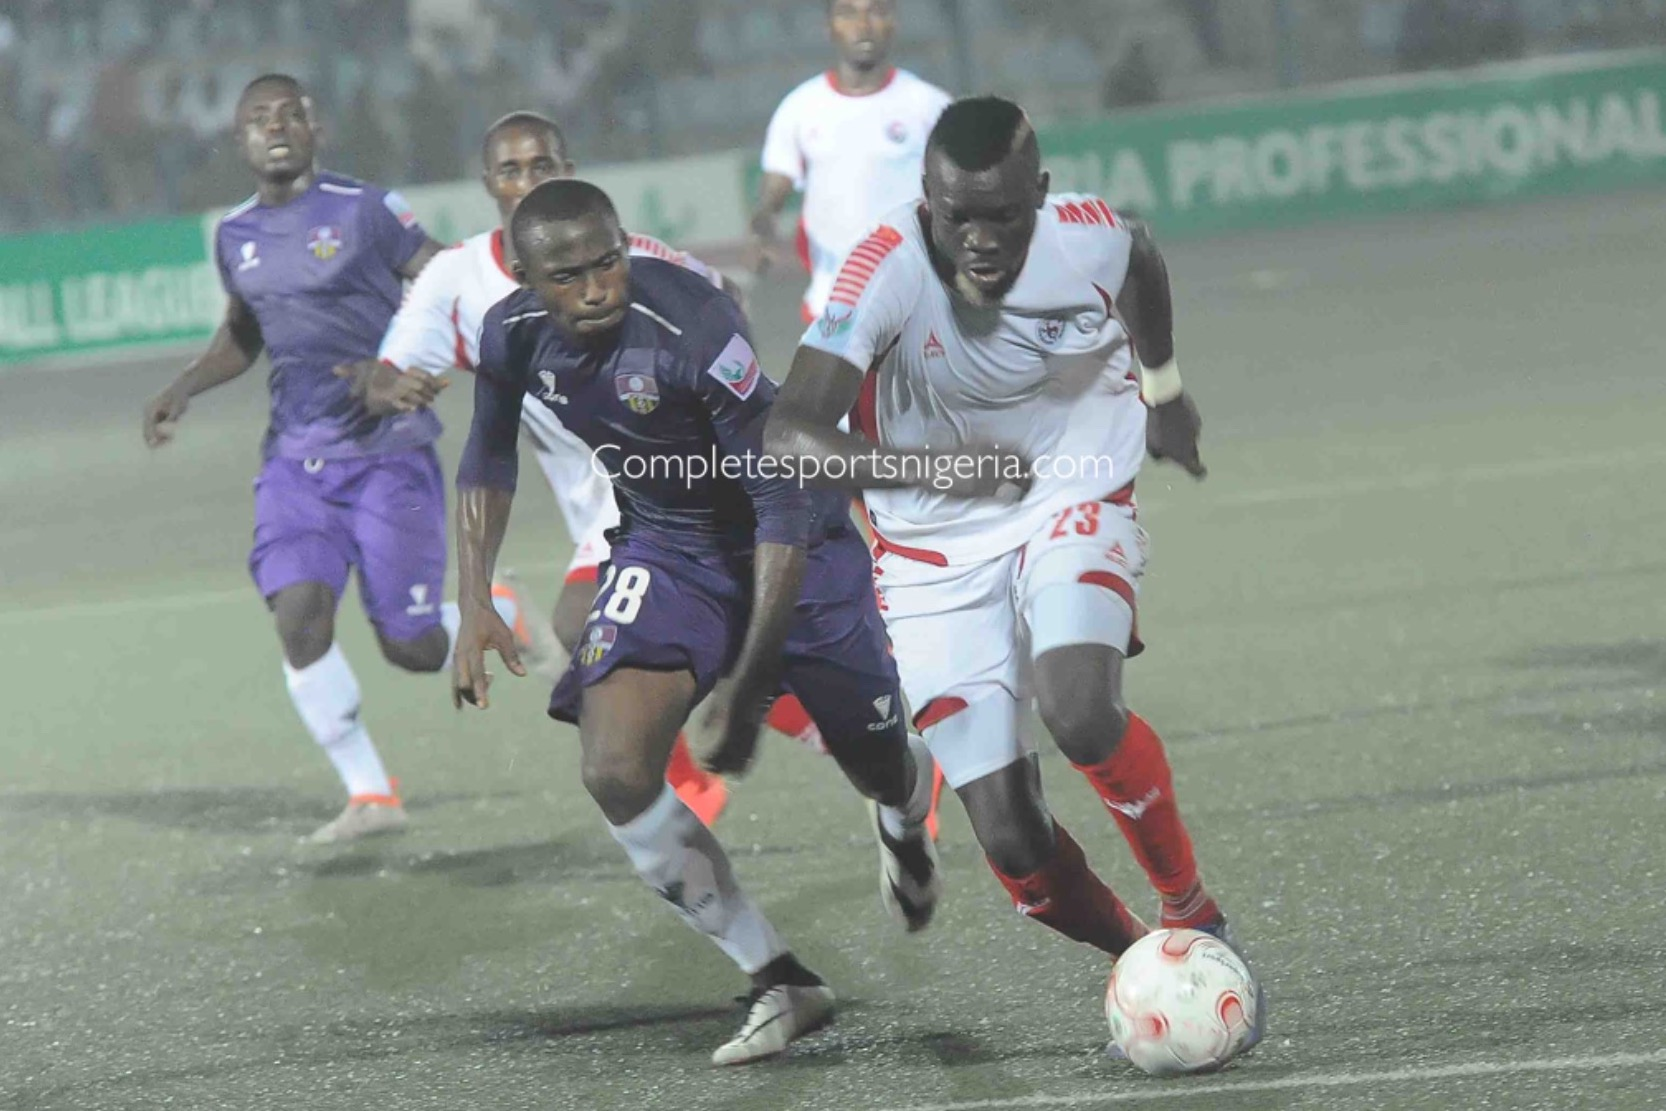 NPFL Matchday-11: Lobi Seek 1st Away Win At Plateau Utd.; Rangers Host ABS, Gun For Lifeline 3rd Win